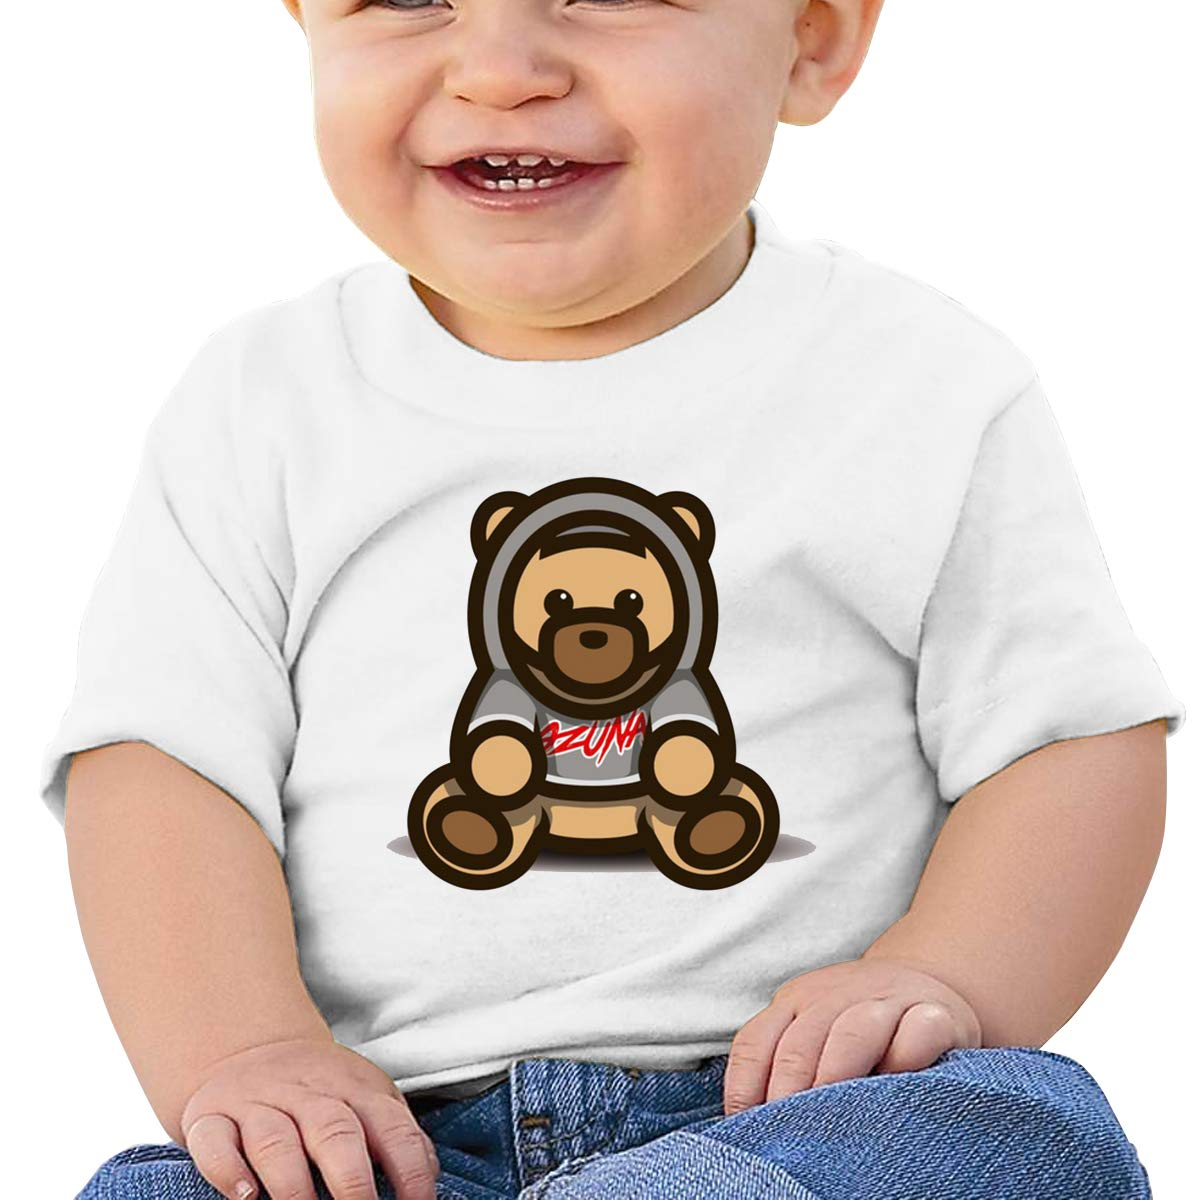 DONGLY 6-24 Month Baby T-Shirt Ozuna Bear Nordic Winter Personality Wild White